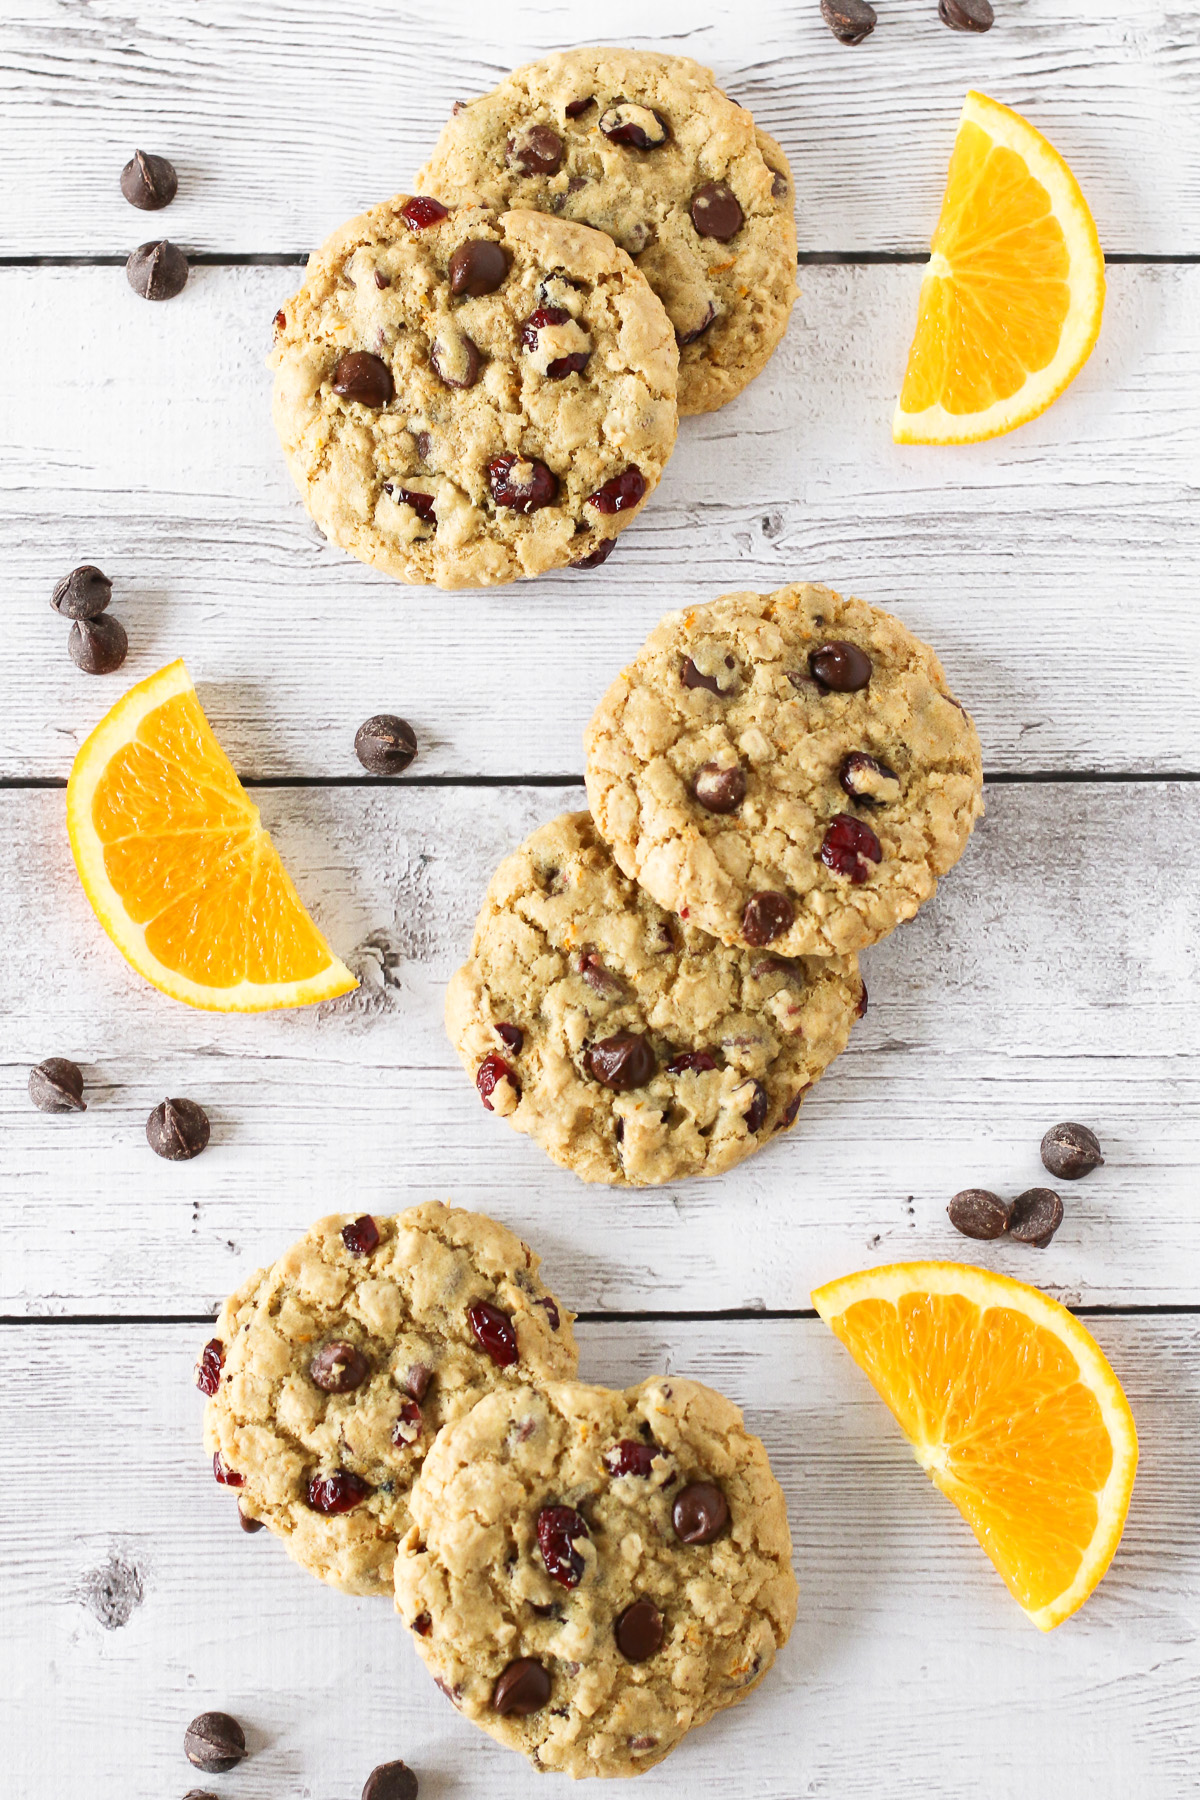 Gluten Free Vegan Cranberry Orange Chocolate Chip Cookies. Chewy cookies with orange zest, dried cranberries and lots of dark chocolate chips!